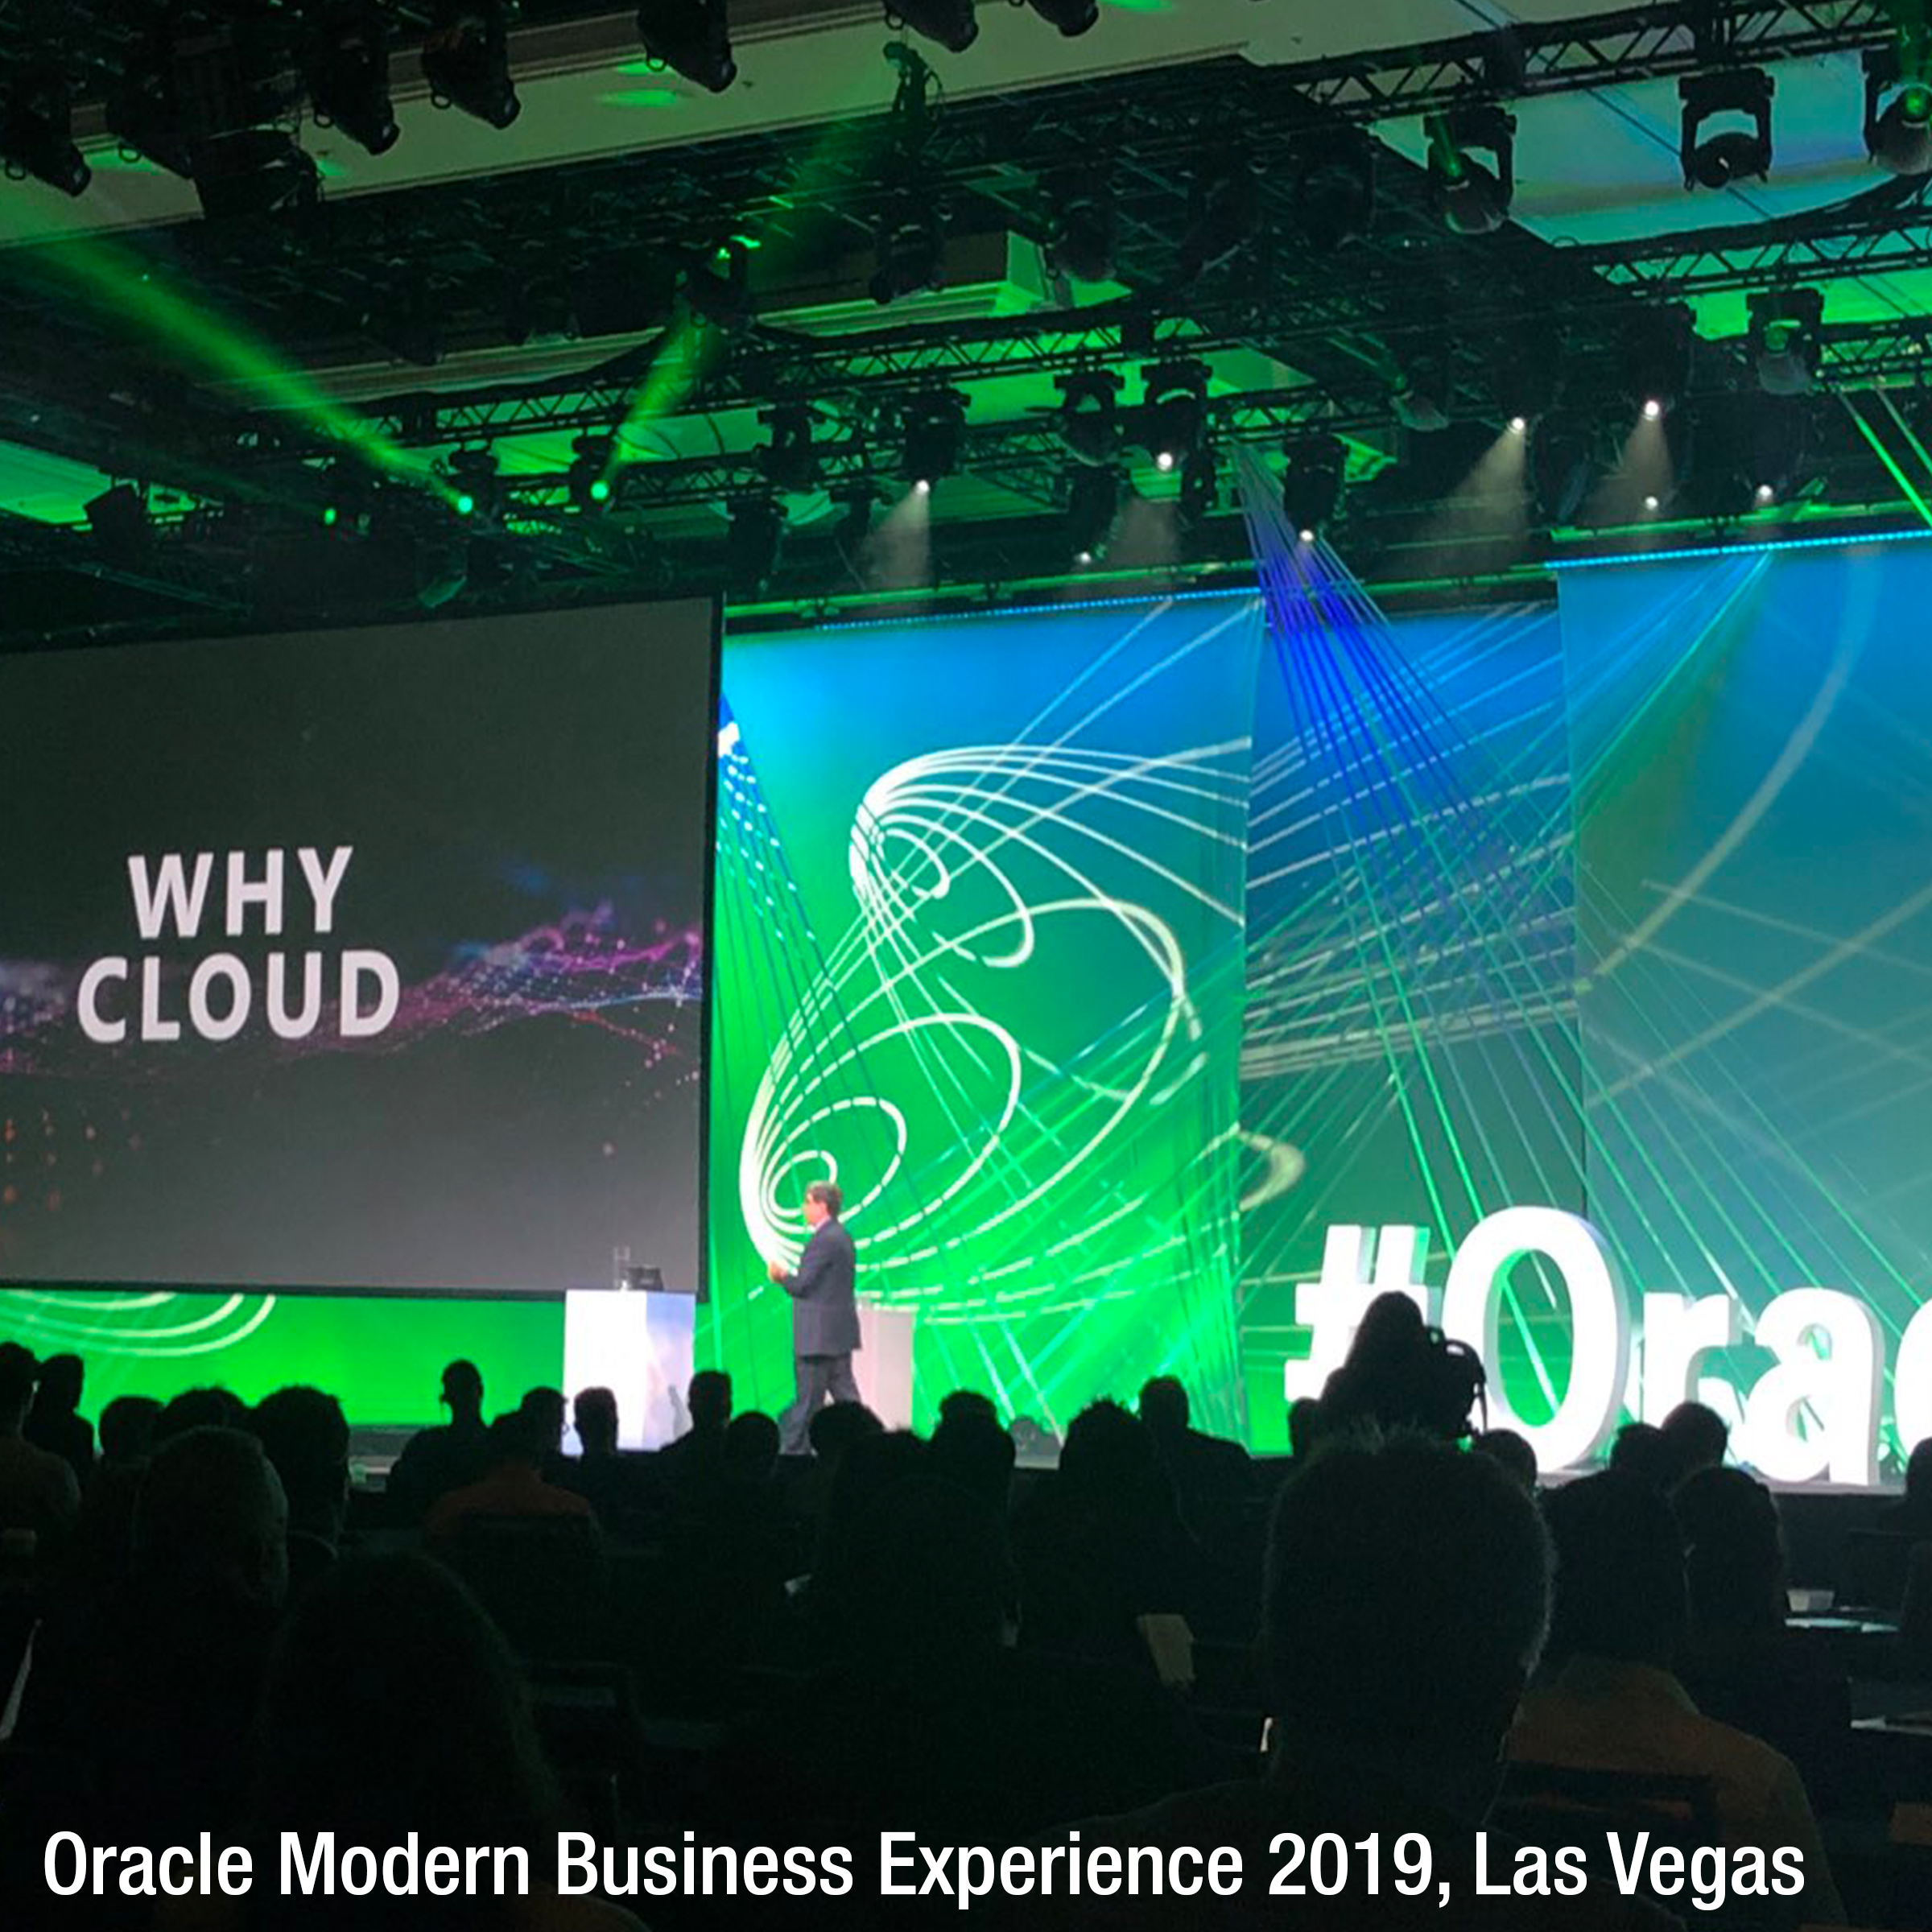 Oracle Modern Business Experience 2019